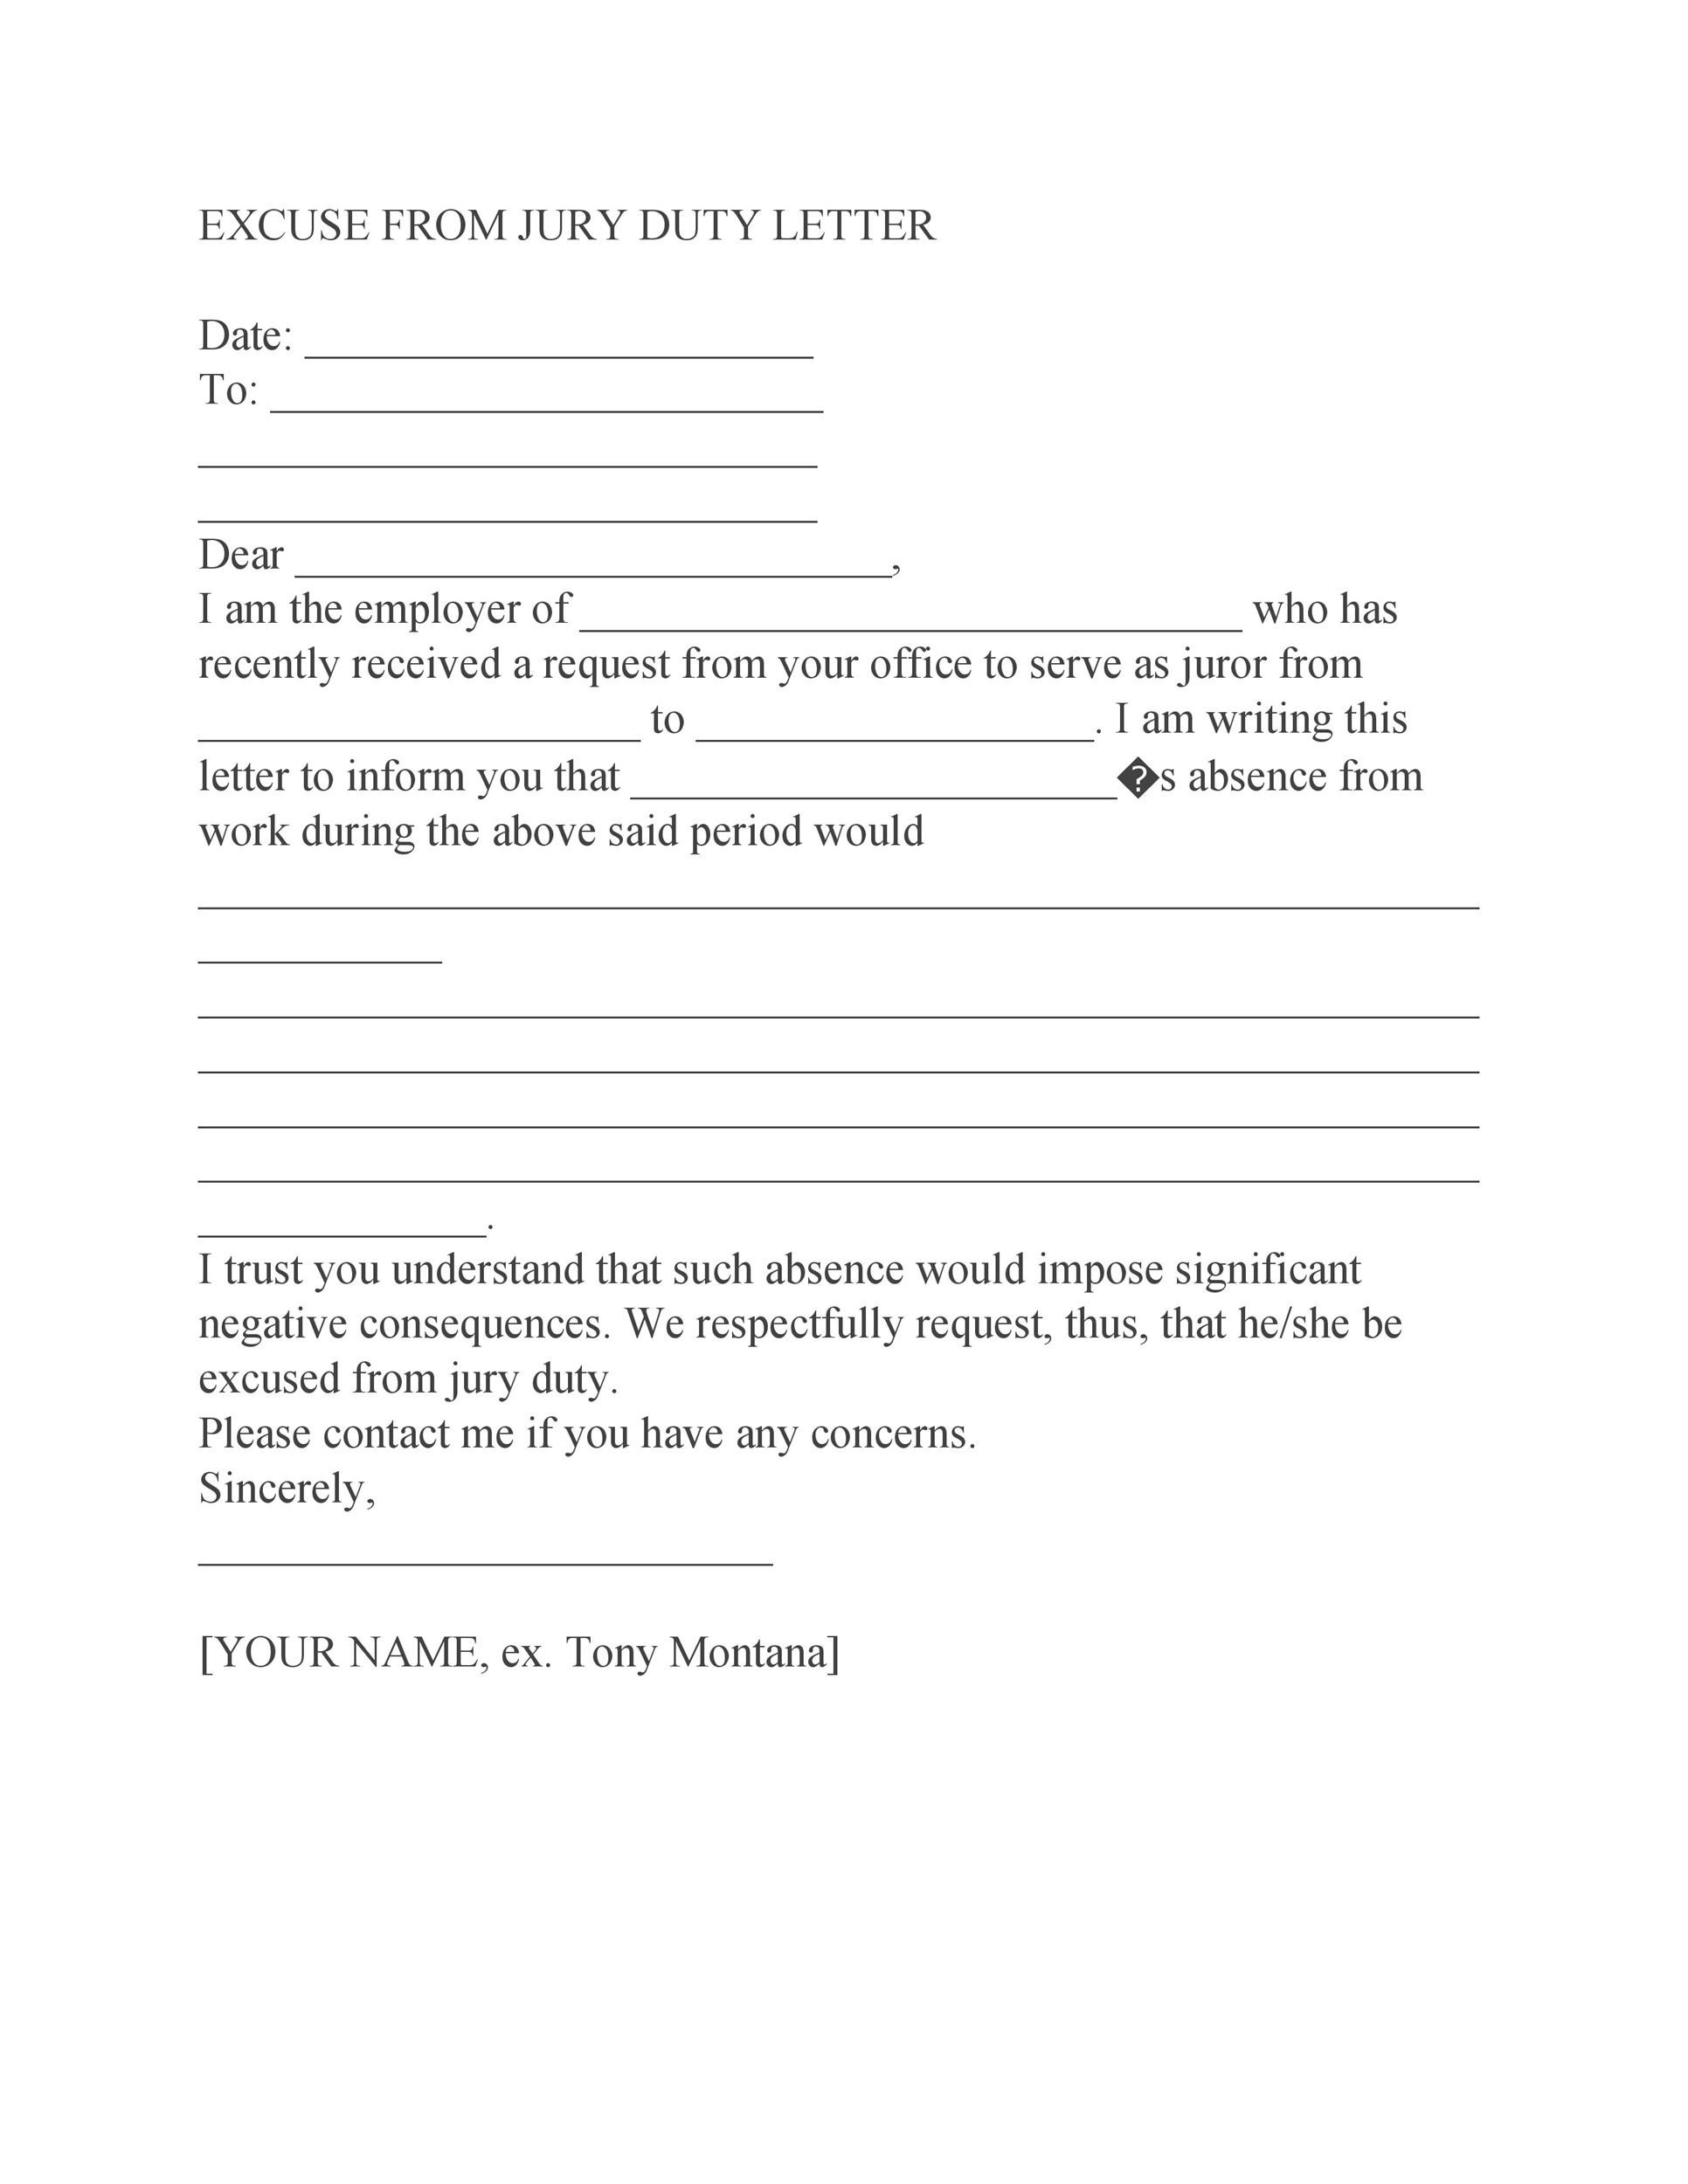 Free jury duty excuse letter template 01